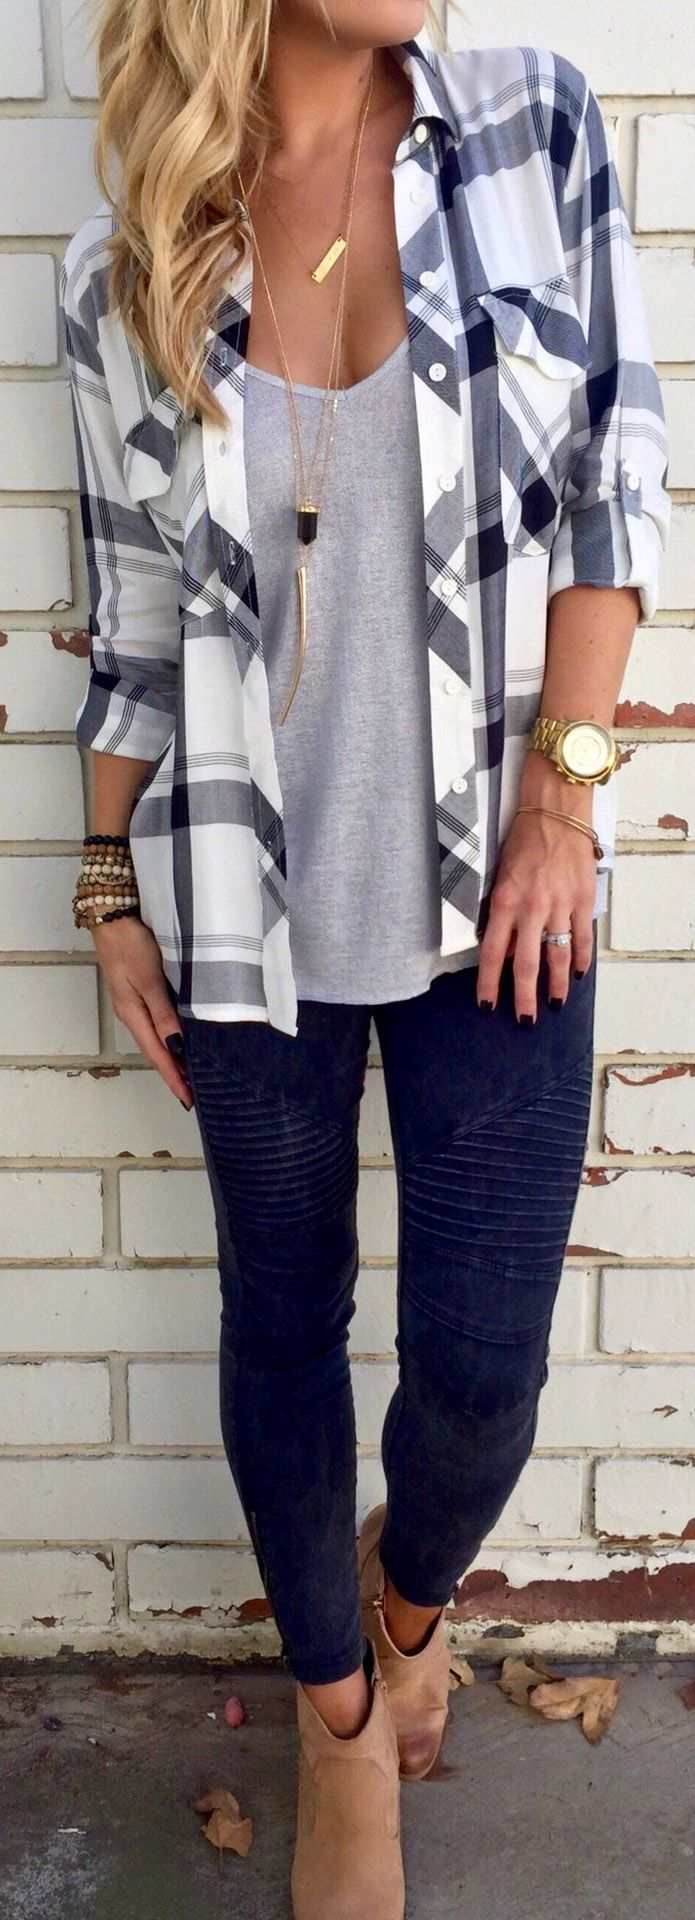 Only $26.99! This shirt is just what you want Navy Plaid Pocket Long Sleeve Shirt. Search more shirts and sweaters at chicnico.com❤️